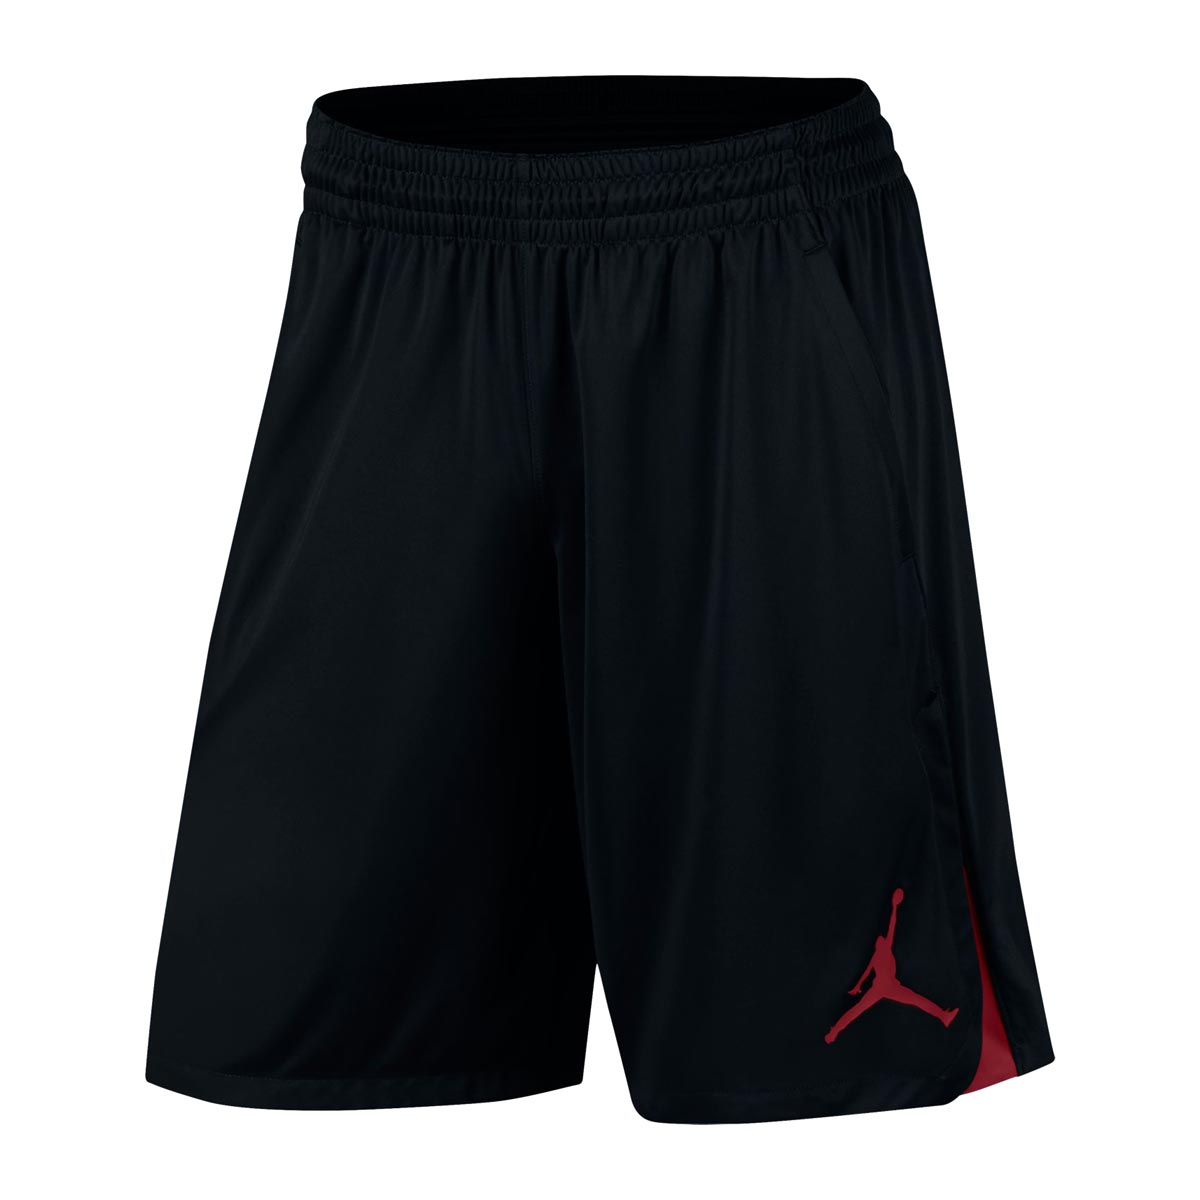 765f606f8b1fc3 The Jordan 23 technical center dry knit short that had performance of the  synthetic material and soft feel of the natural cotton. A feeling of  wearing that ...